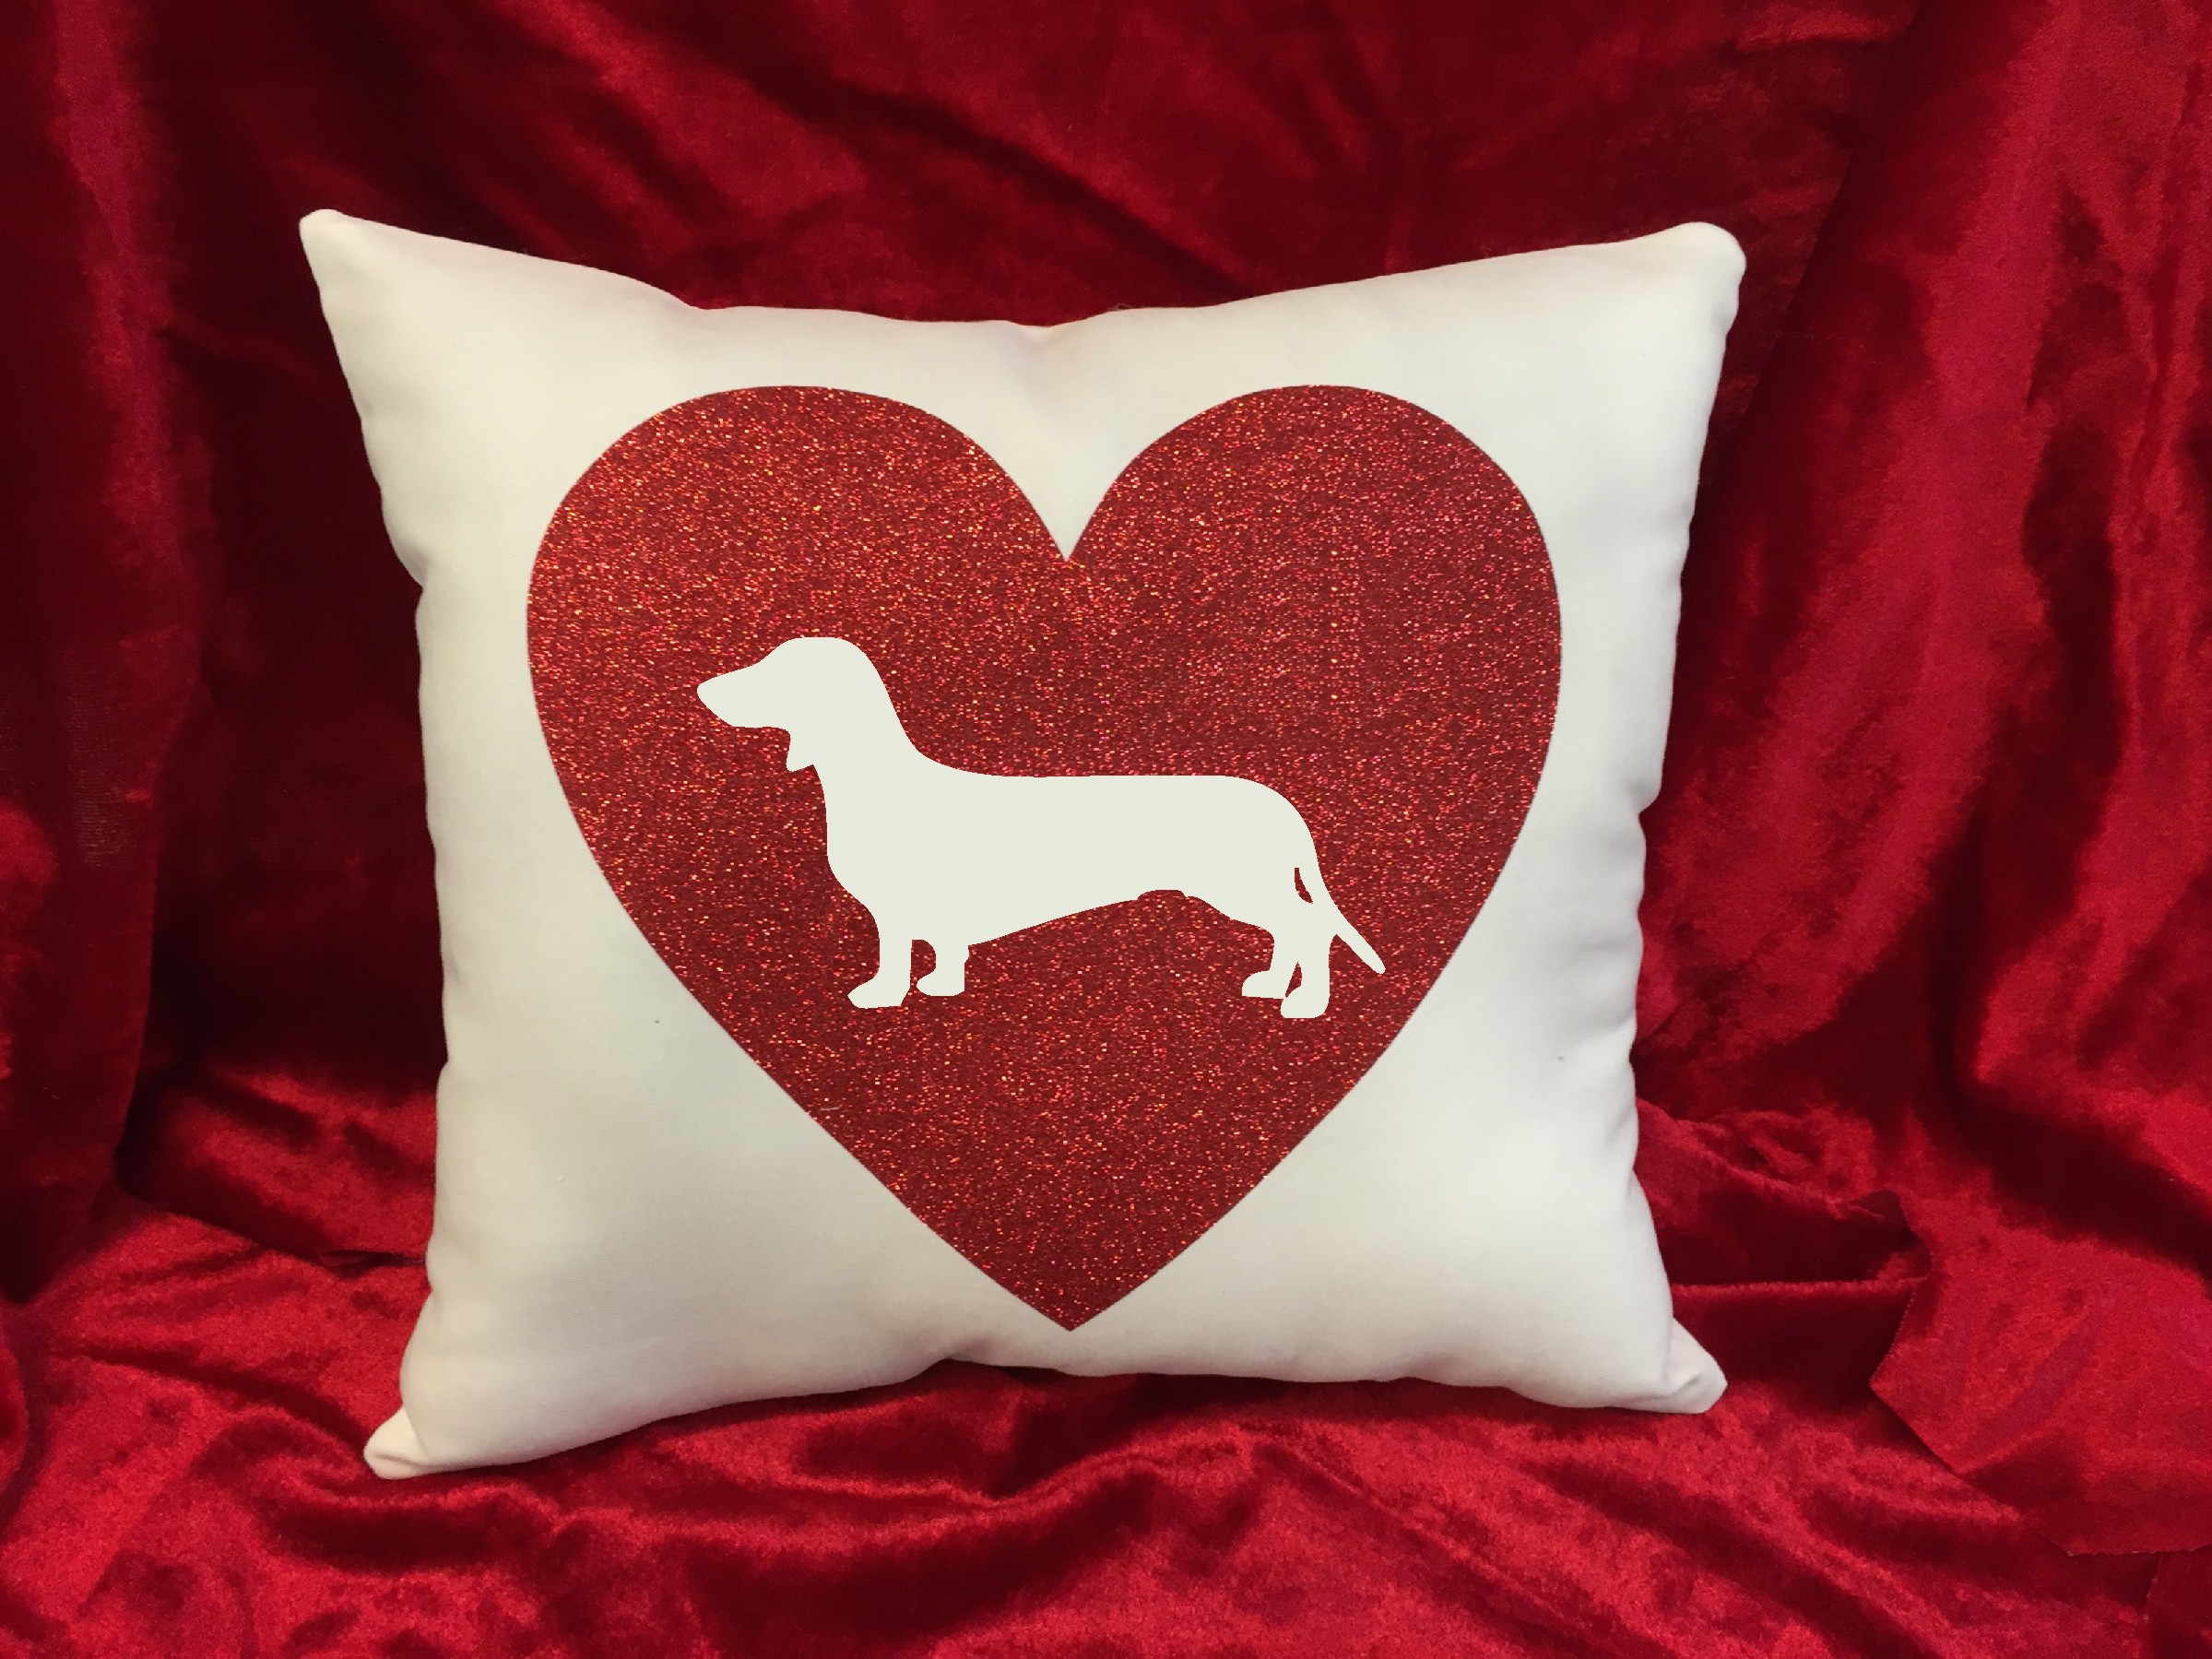 Dogs - Throw Pillow - Dachshund